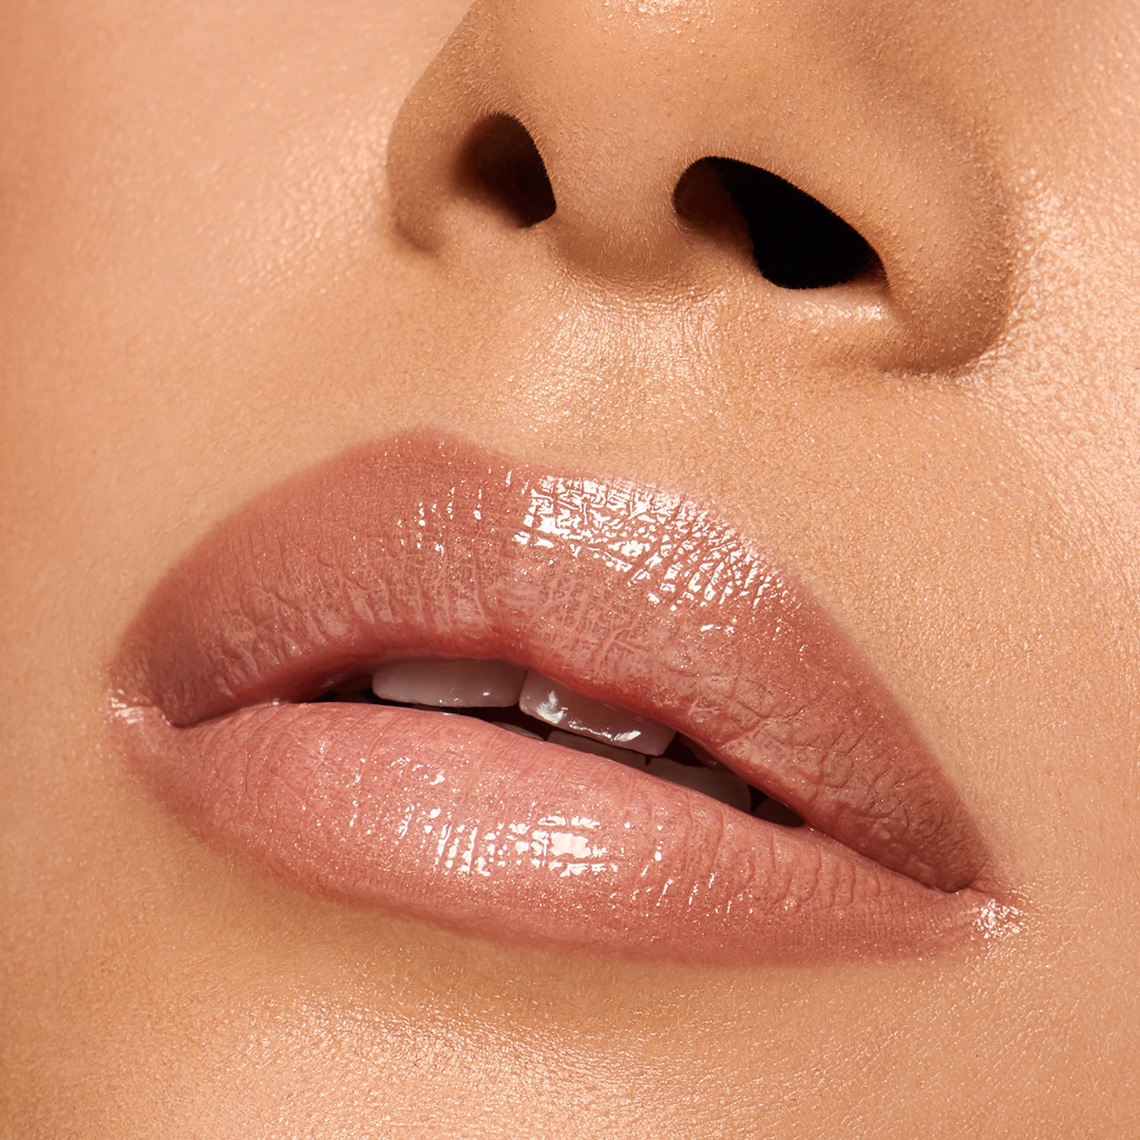 photofolioresized-02_Covergirl_Lip_Gloss_02_127_retouched_square